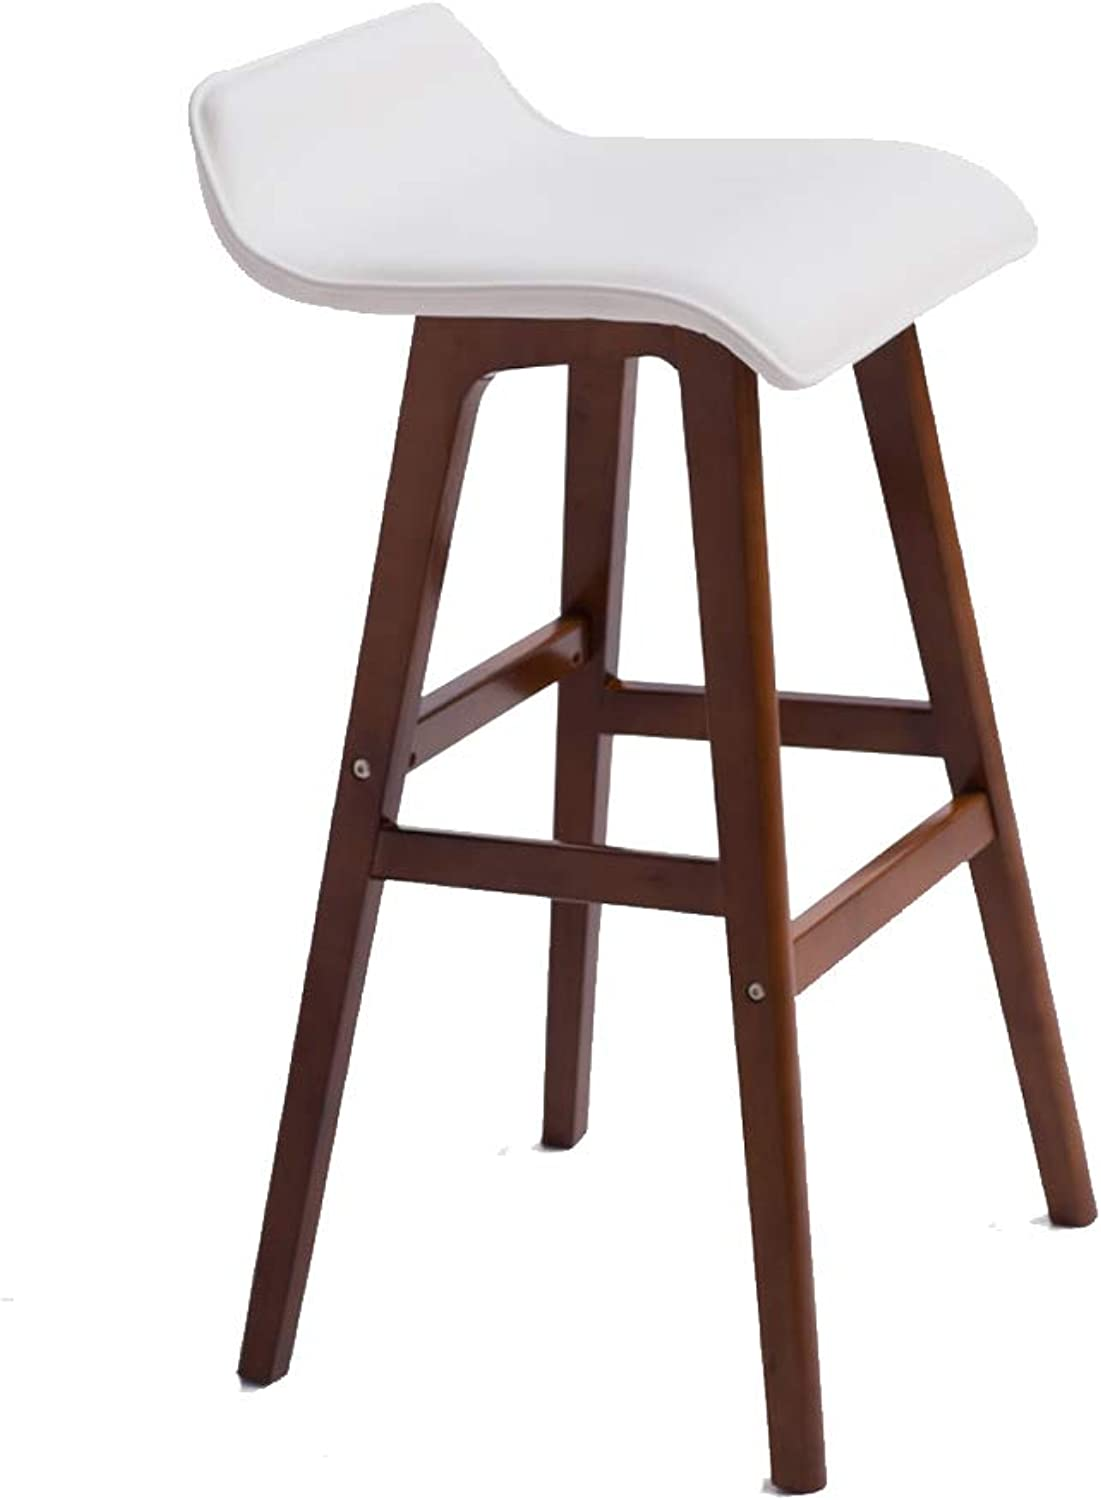 Bar Chair Dining Chair High Stool Kitchen Chair Seat,with Backrest & Footrest PU Leather Wooden, for Counter Cafe Kitchen Breakfast Pub,2 colors